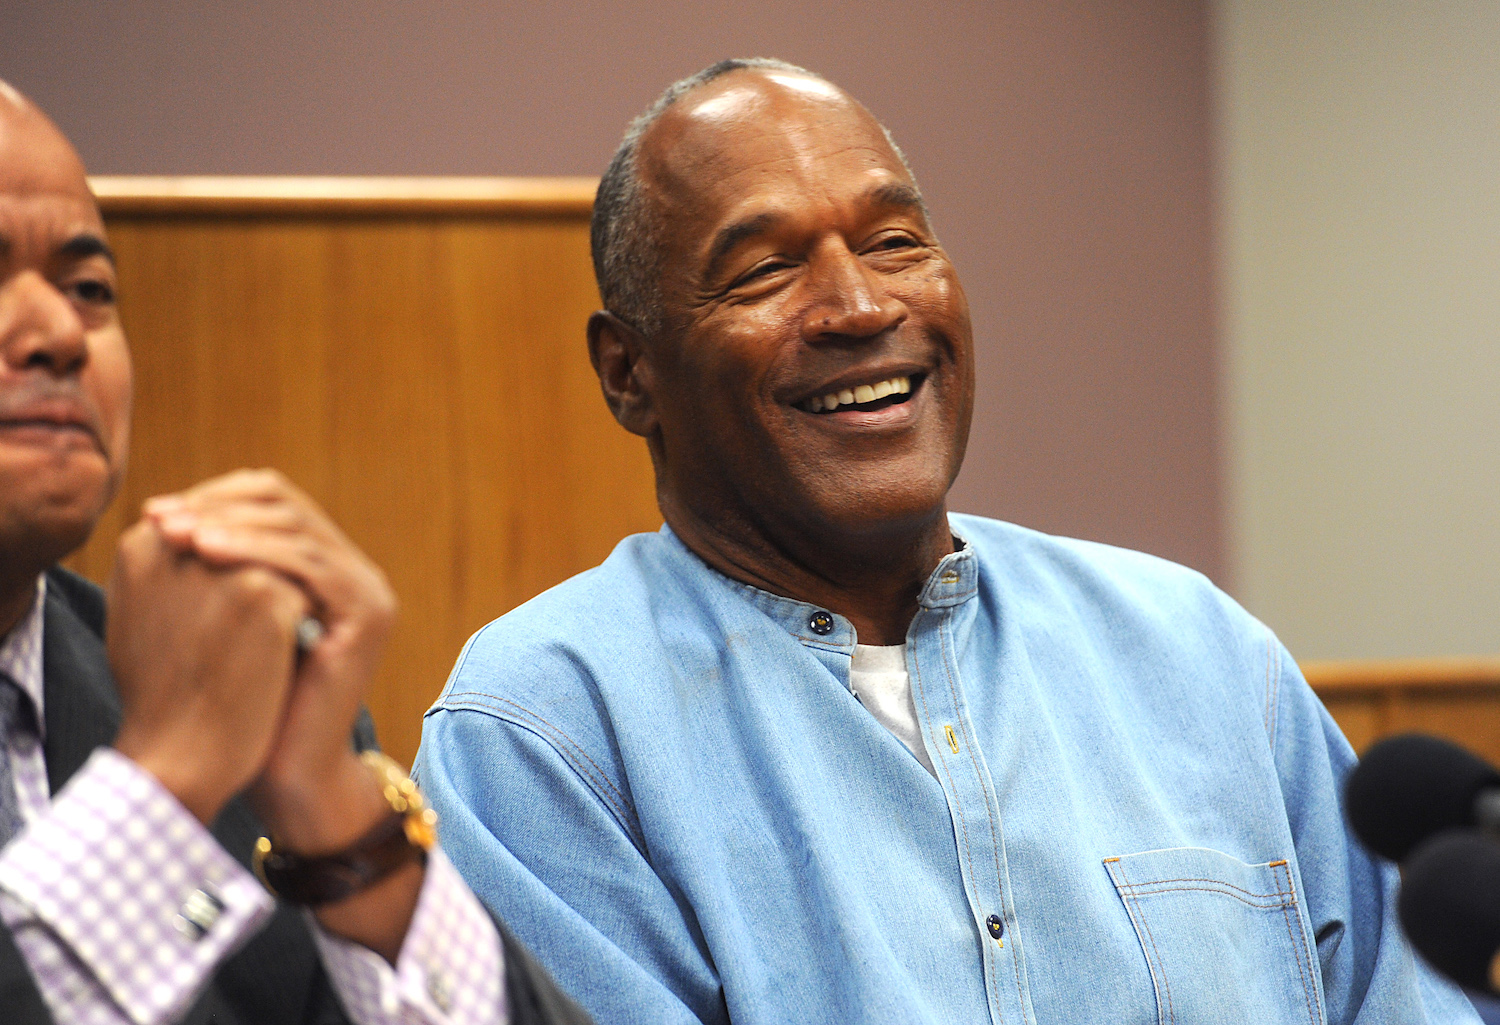 O.J. Simpson Brags About Himself and Prediction Coming True in New Video